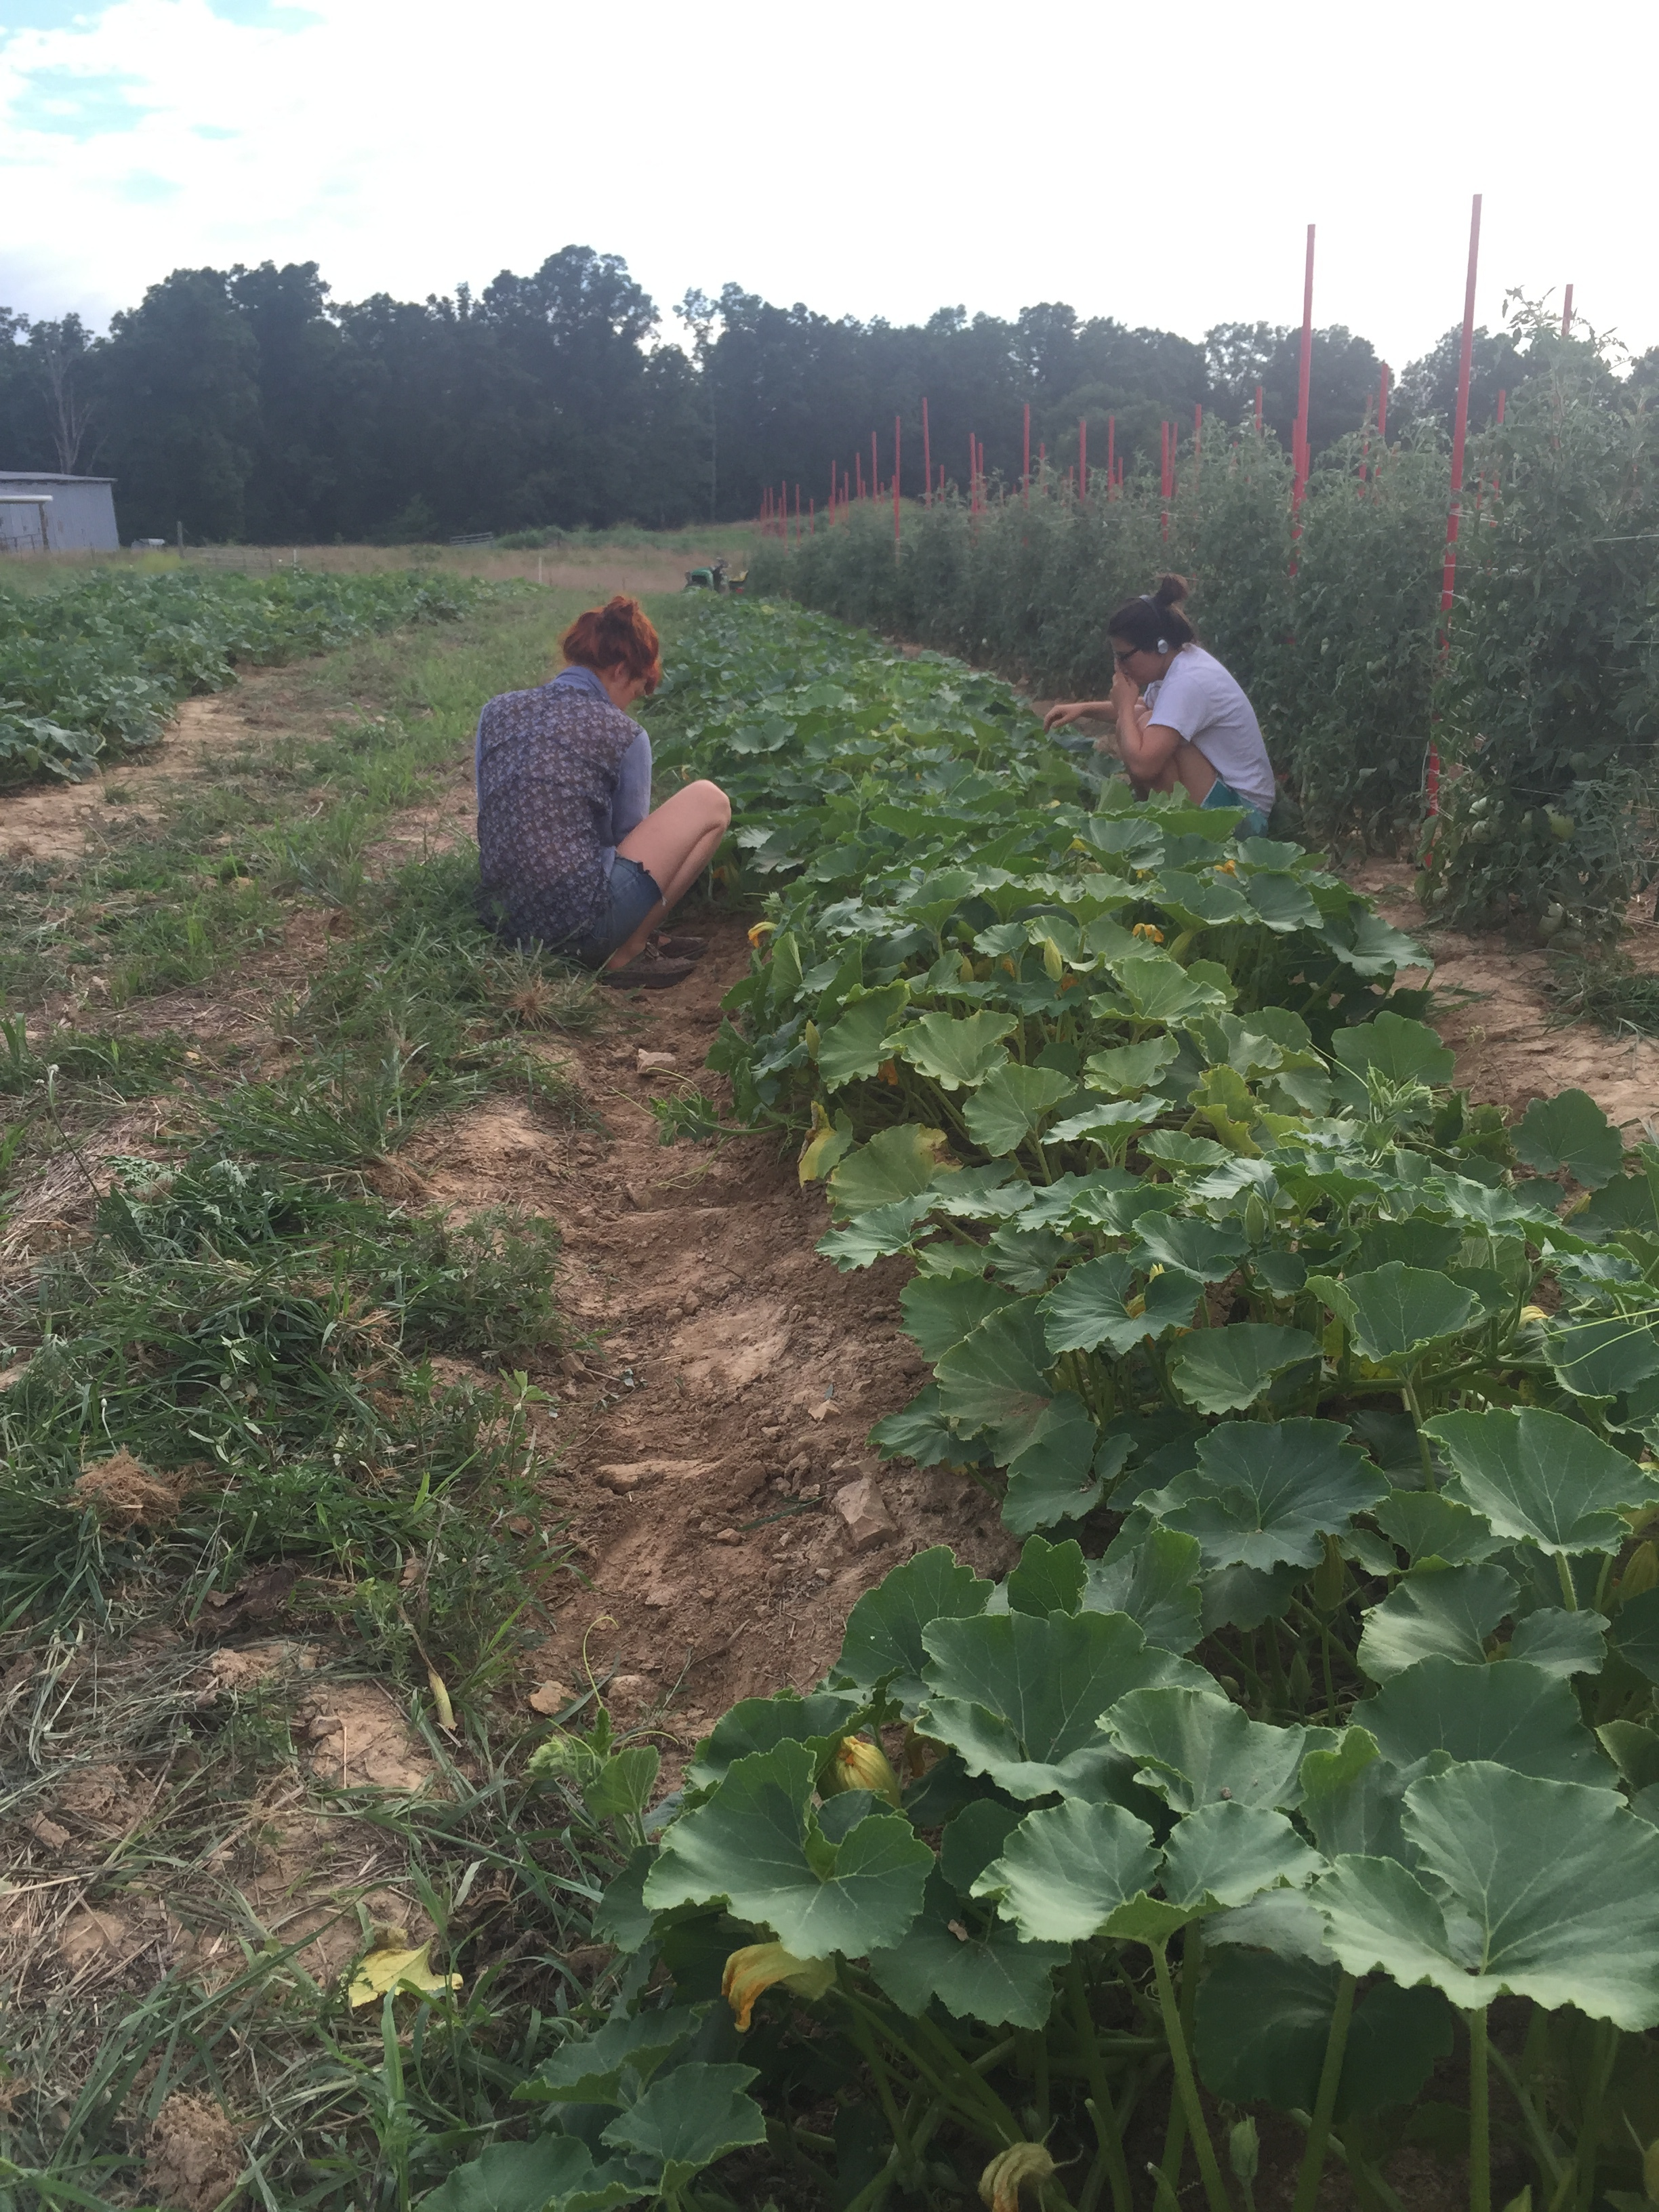 Weeding the winter squash